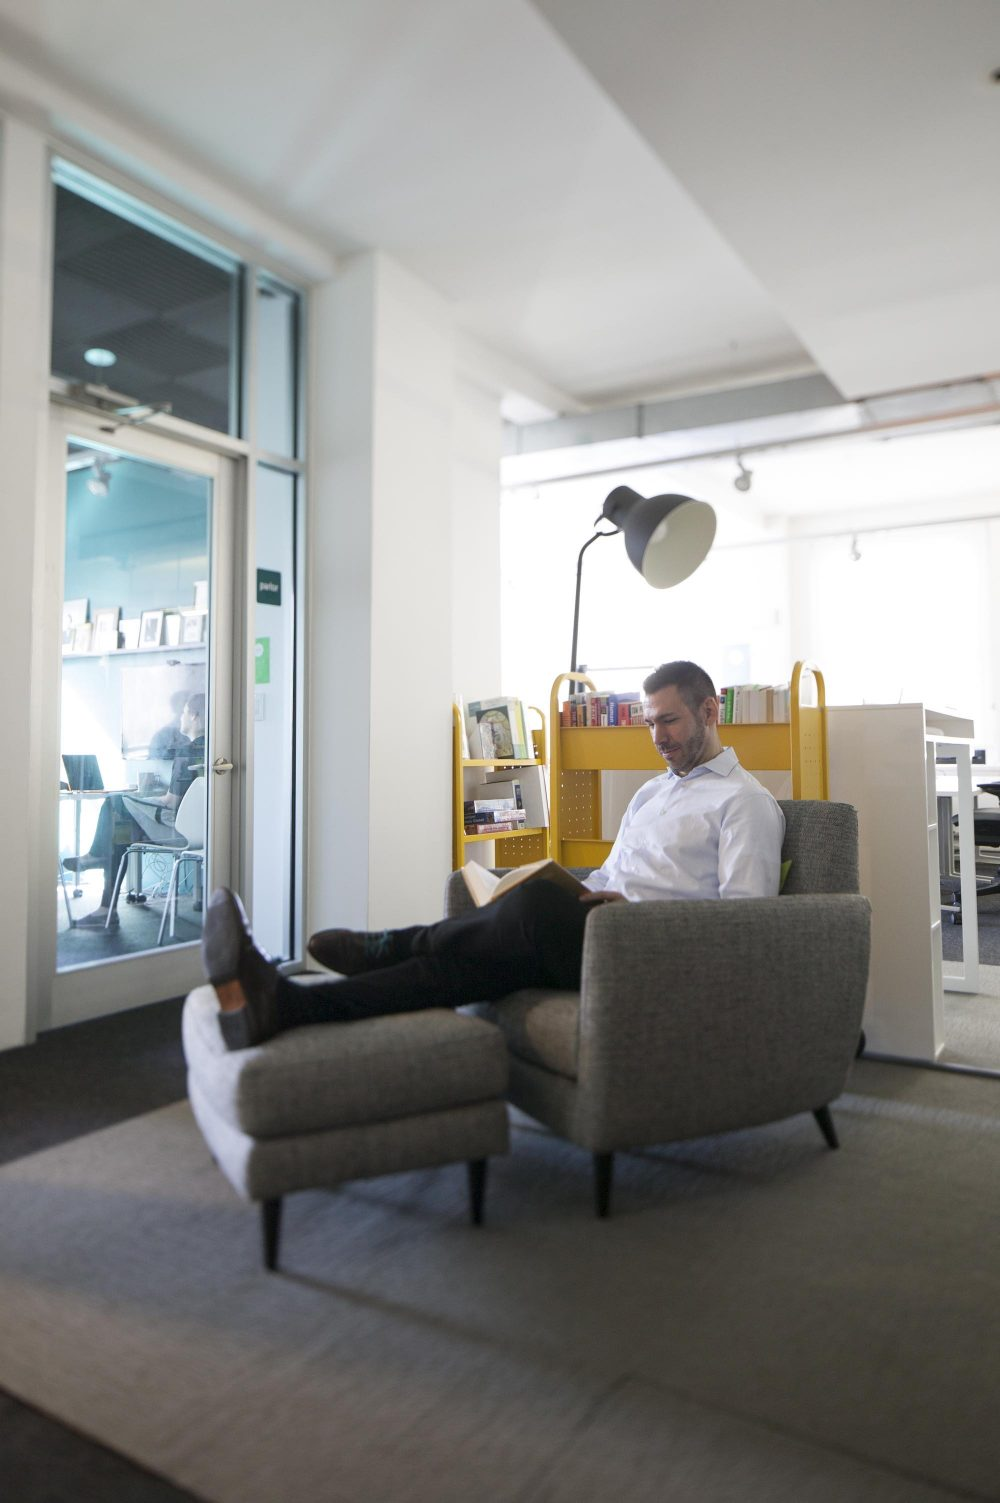 Individuals can sit and study material away from their desks without disturbing other workers